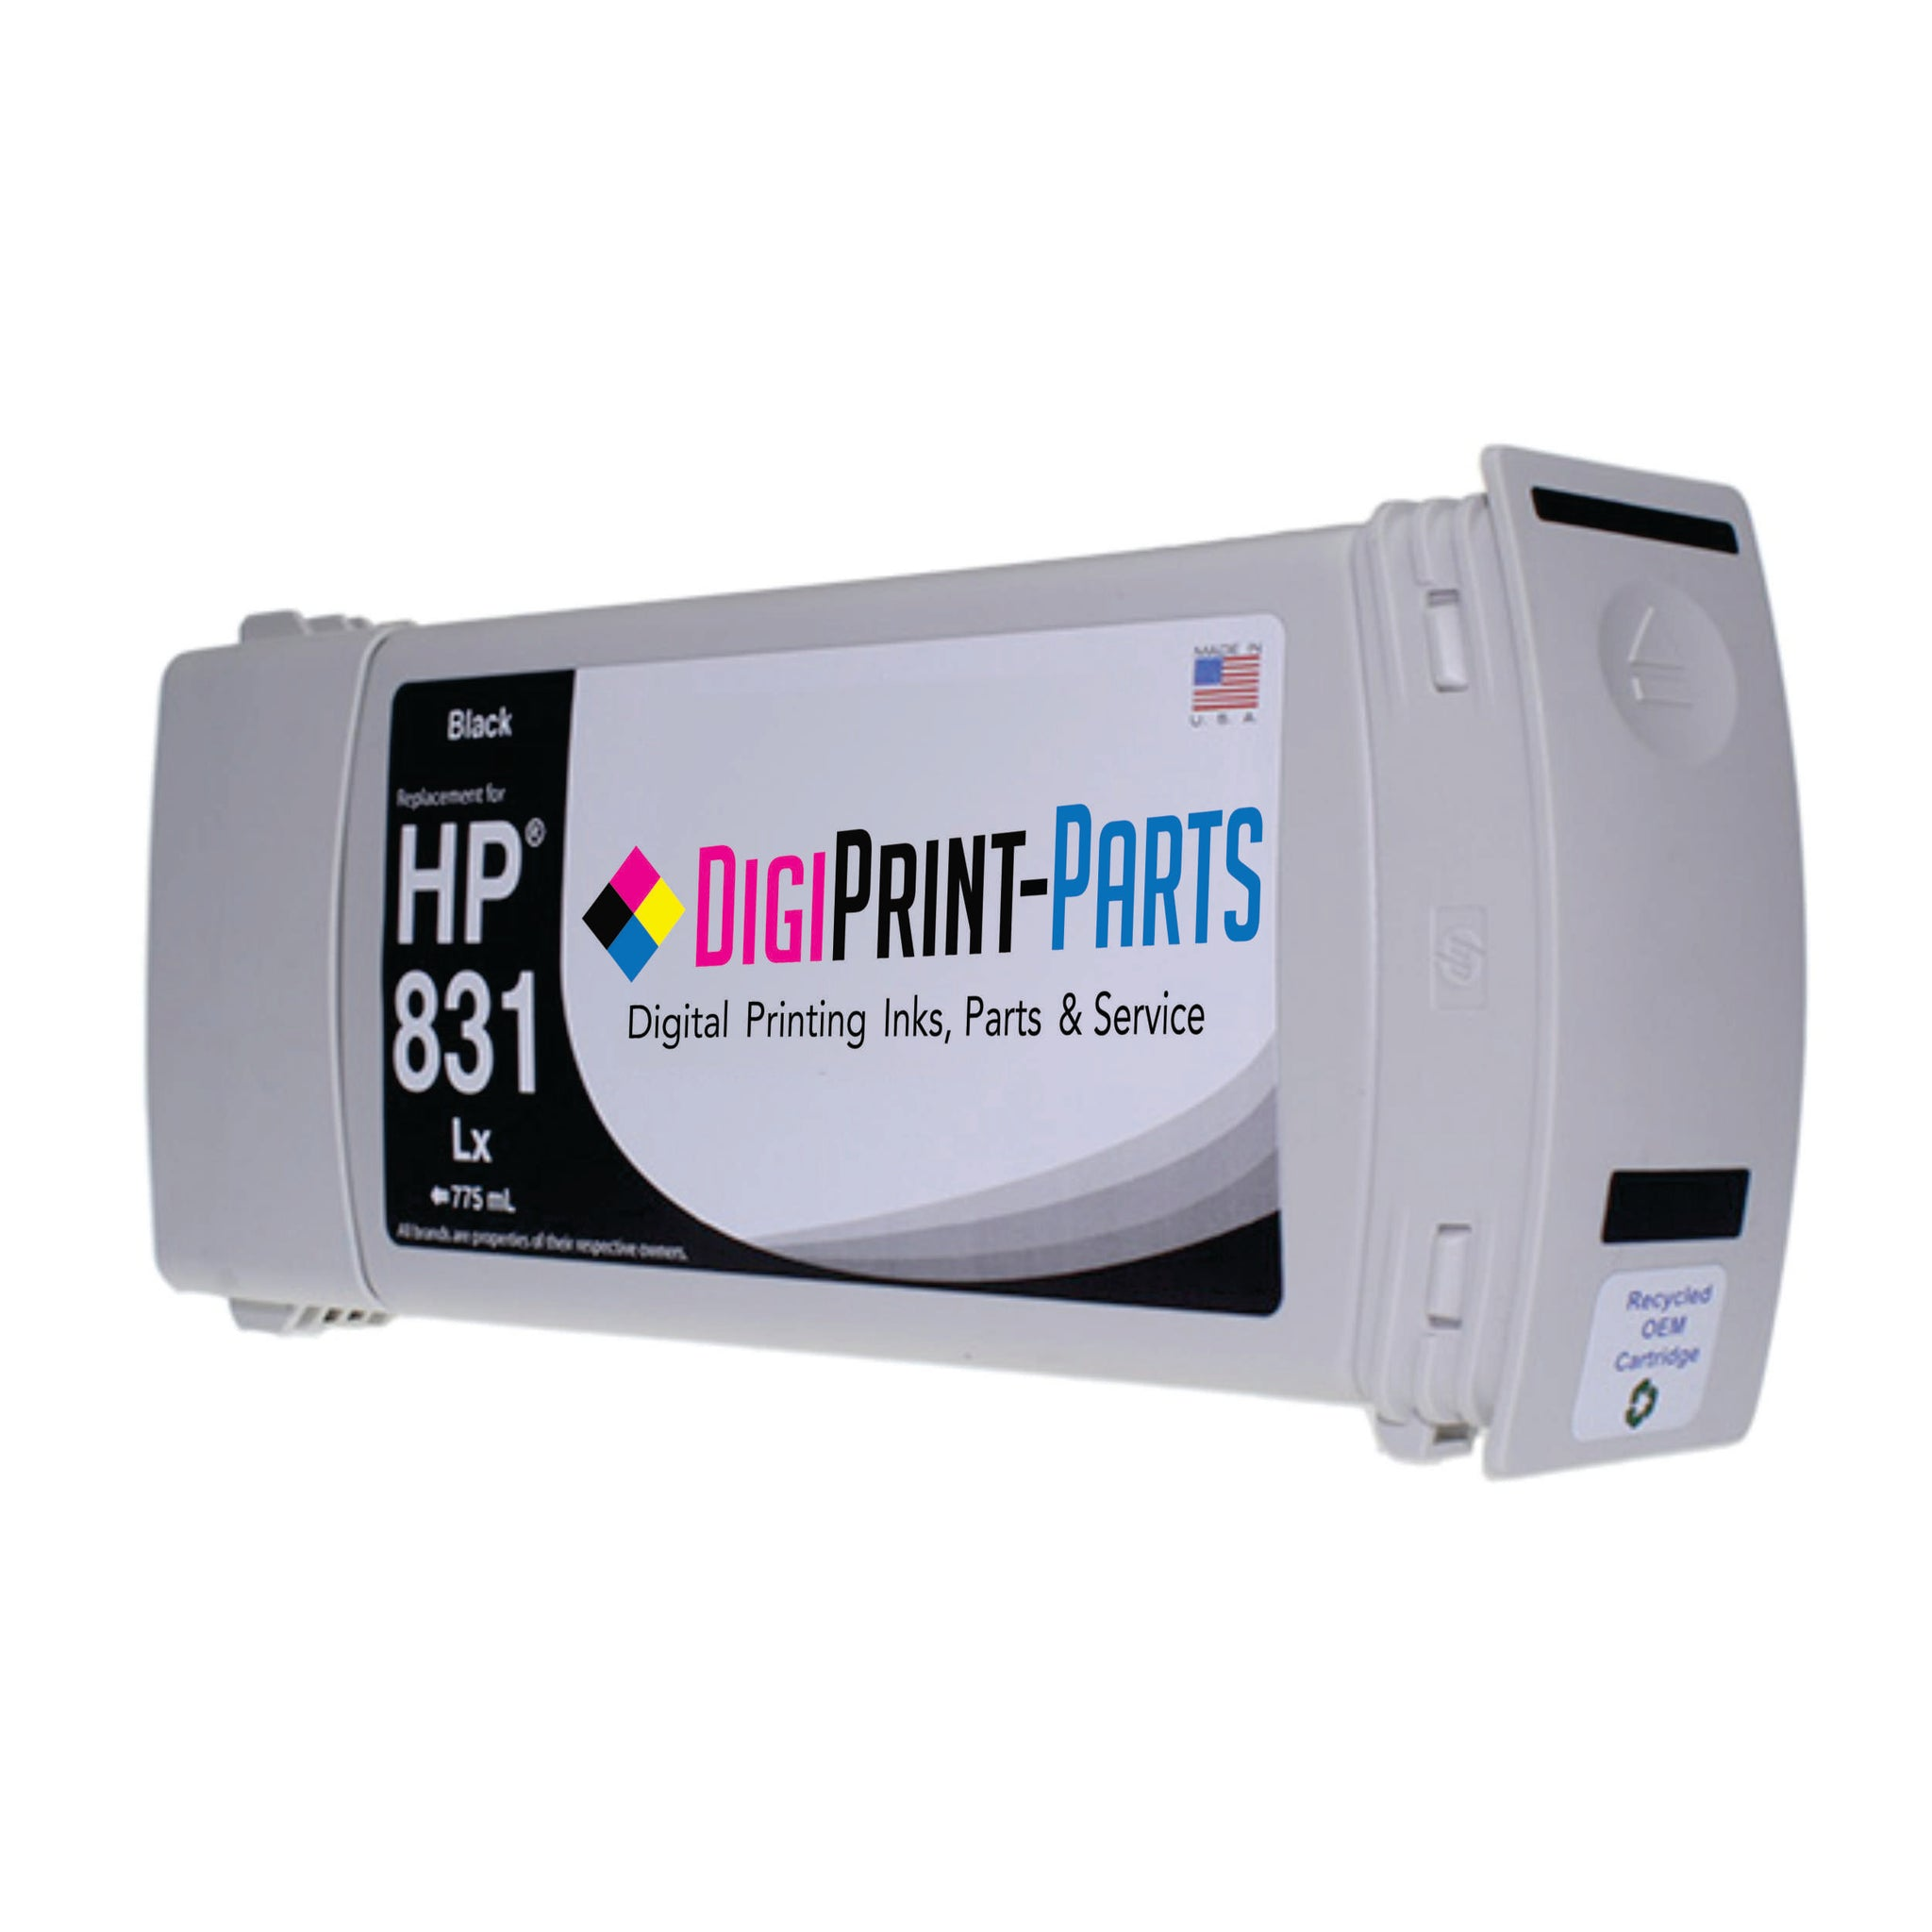 HP 831 Latex Ink for all 300 series printers